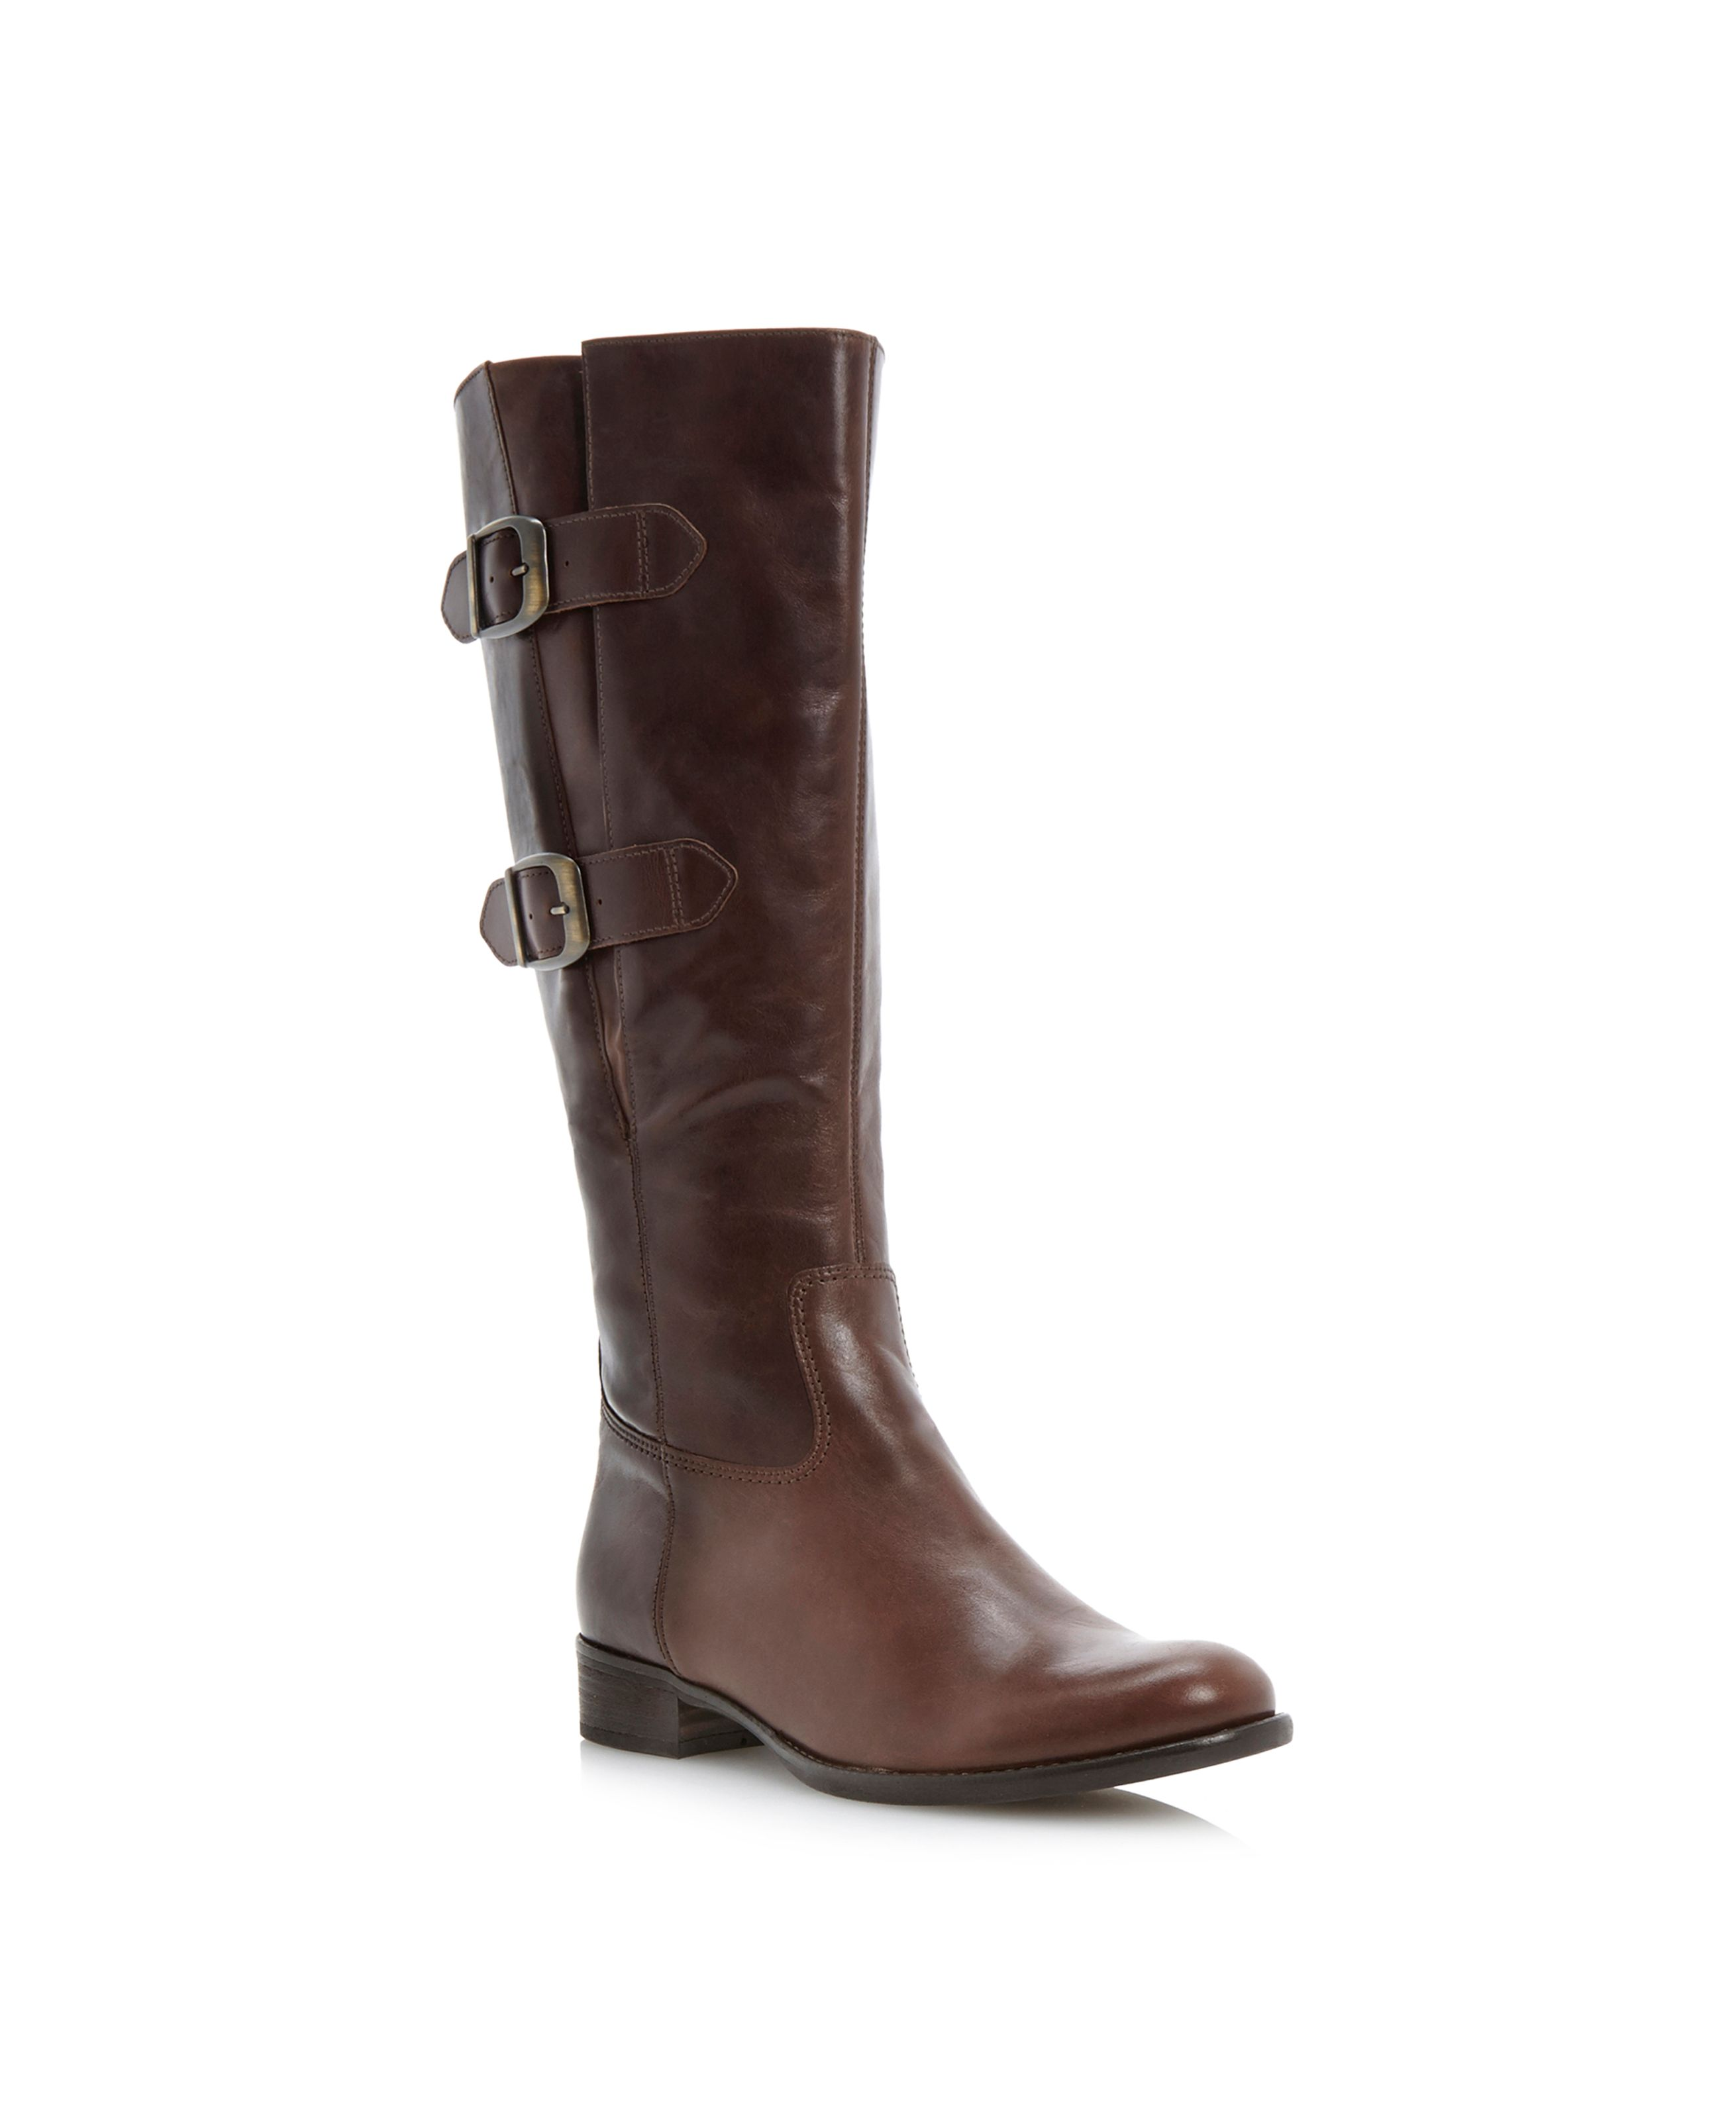 Astoria double buckle riding boots